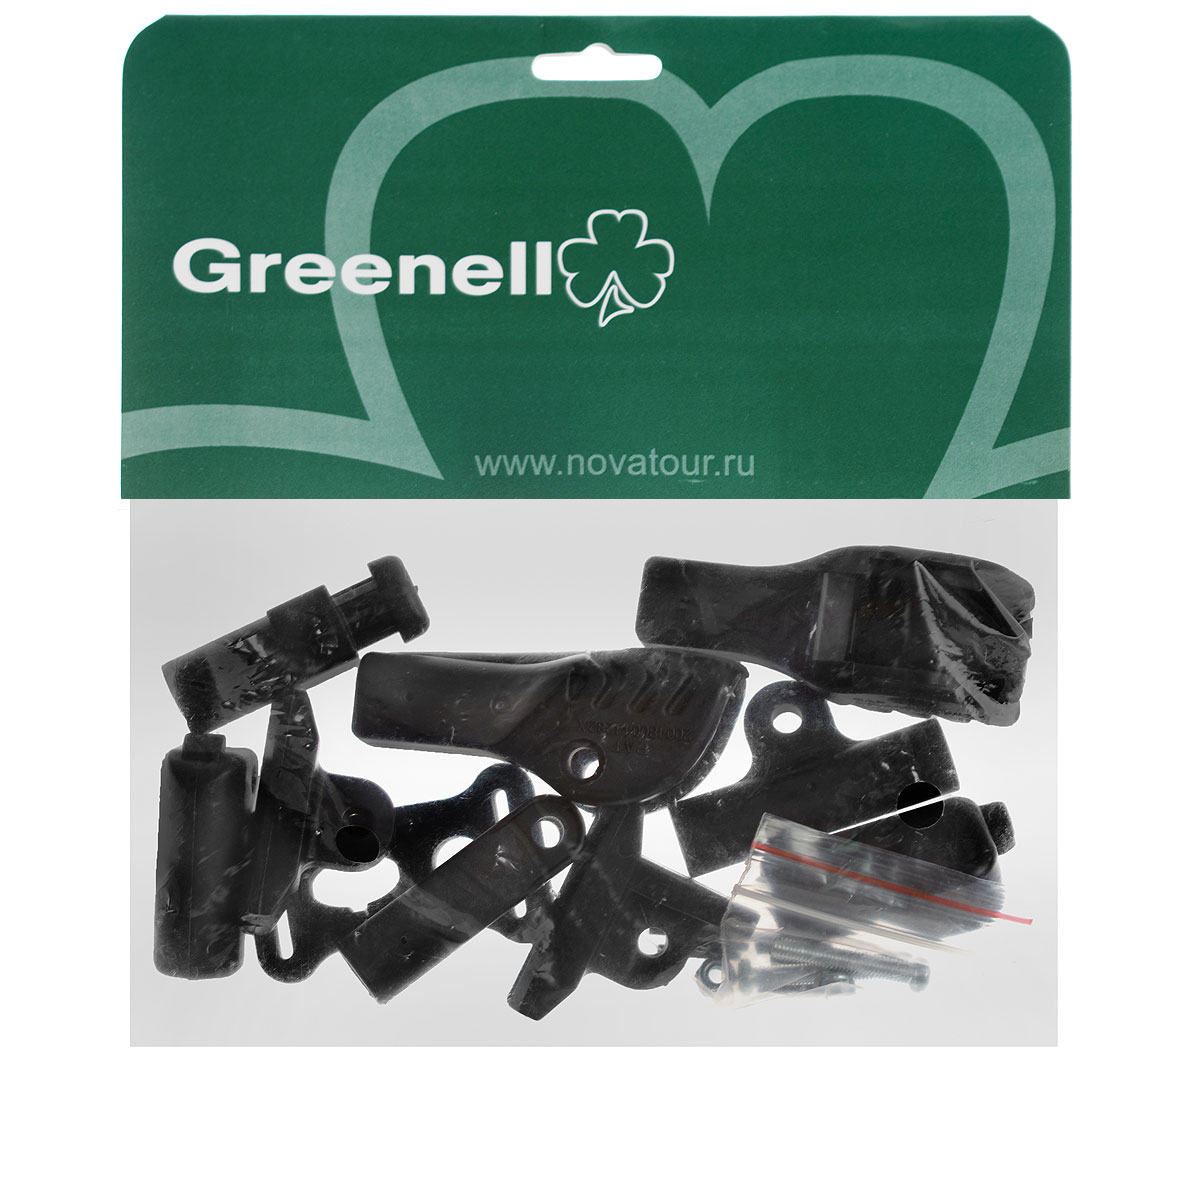 Ремкомплект Greenell №1, для палаток: Aughris 2, Castlerea 4, Clare 3, Dingle 3, Dingle light 3, Howth 4, Larne 2, Private, Tralee 2, Tralee 3 ремкомплекты для туристических палаток greenell ремкомплект 2 для палаток